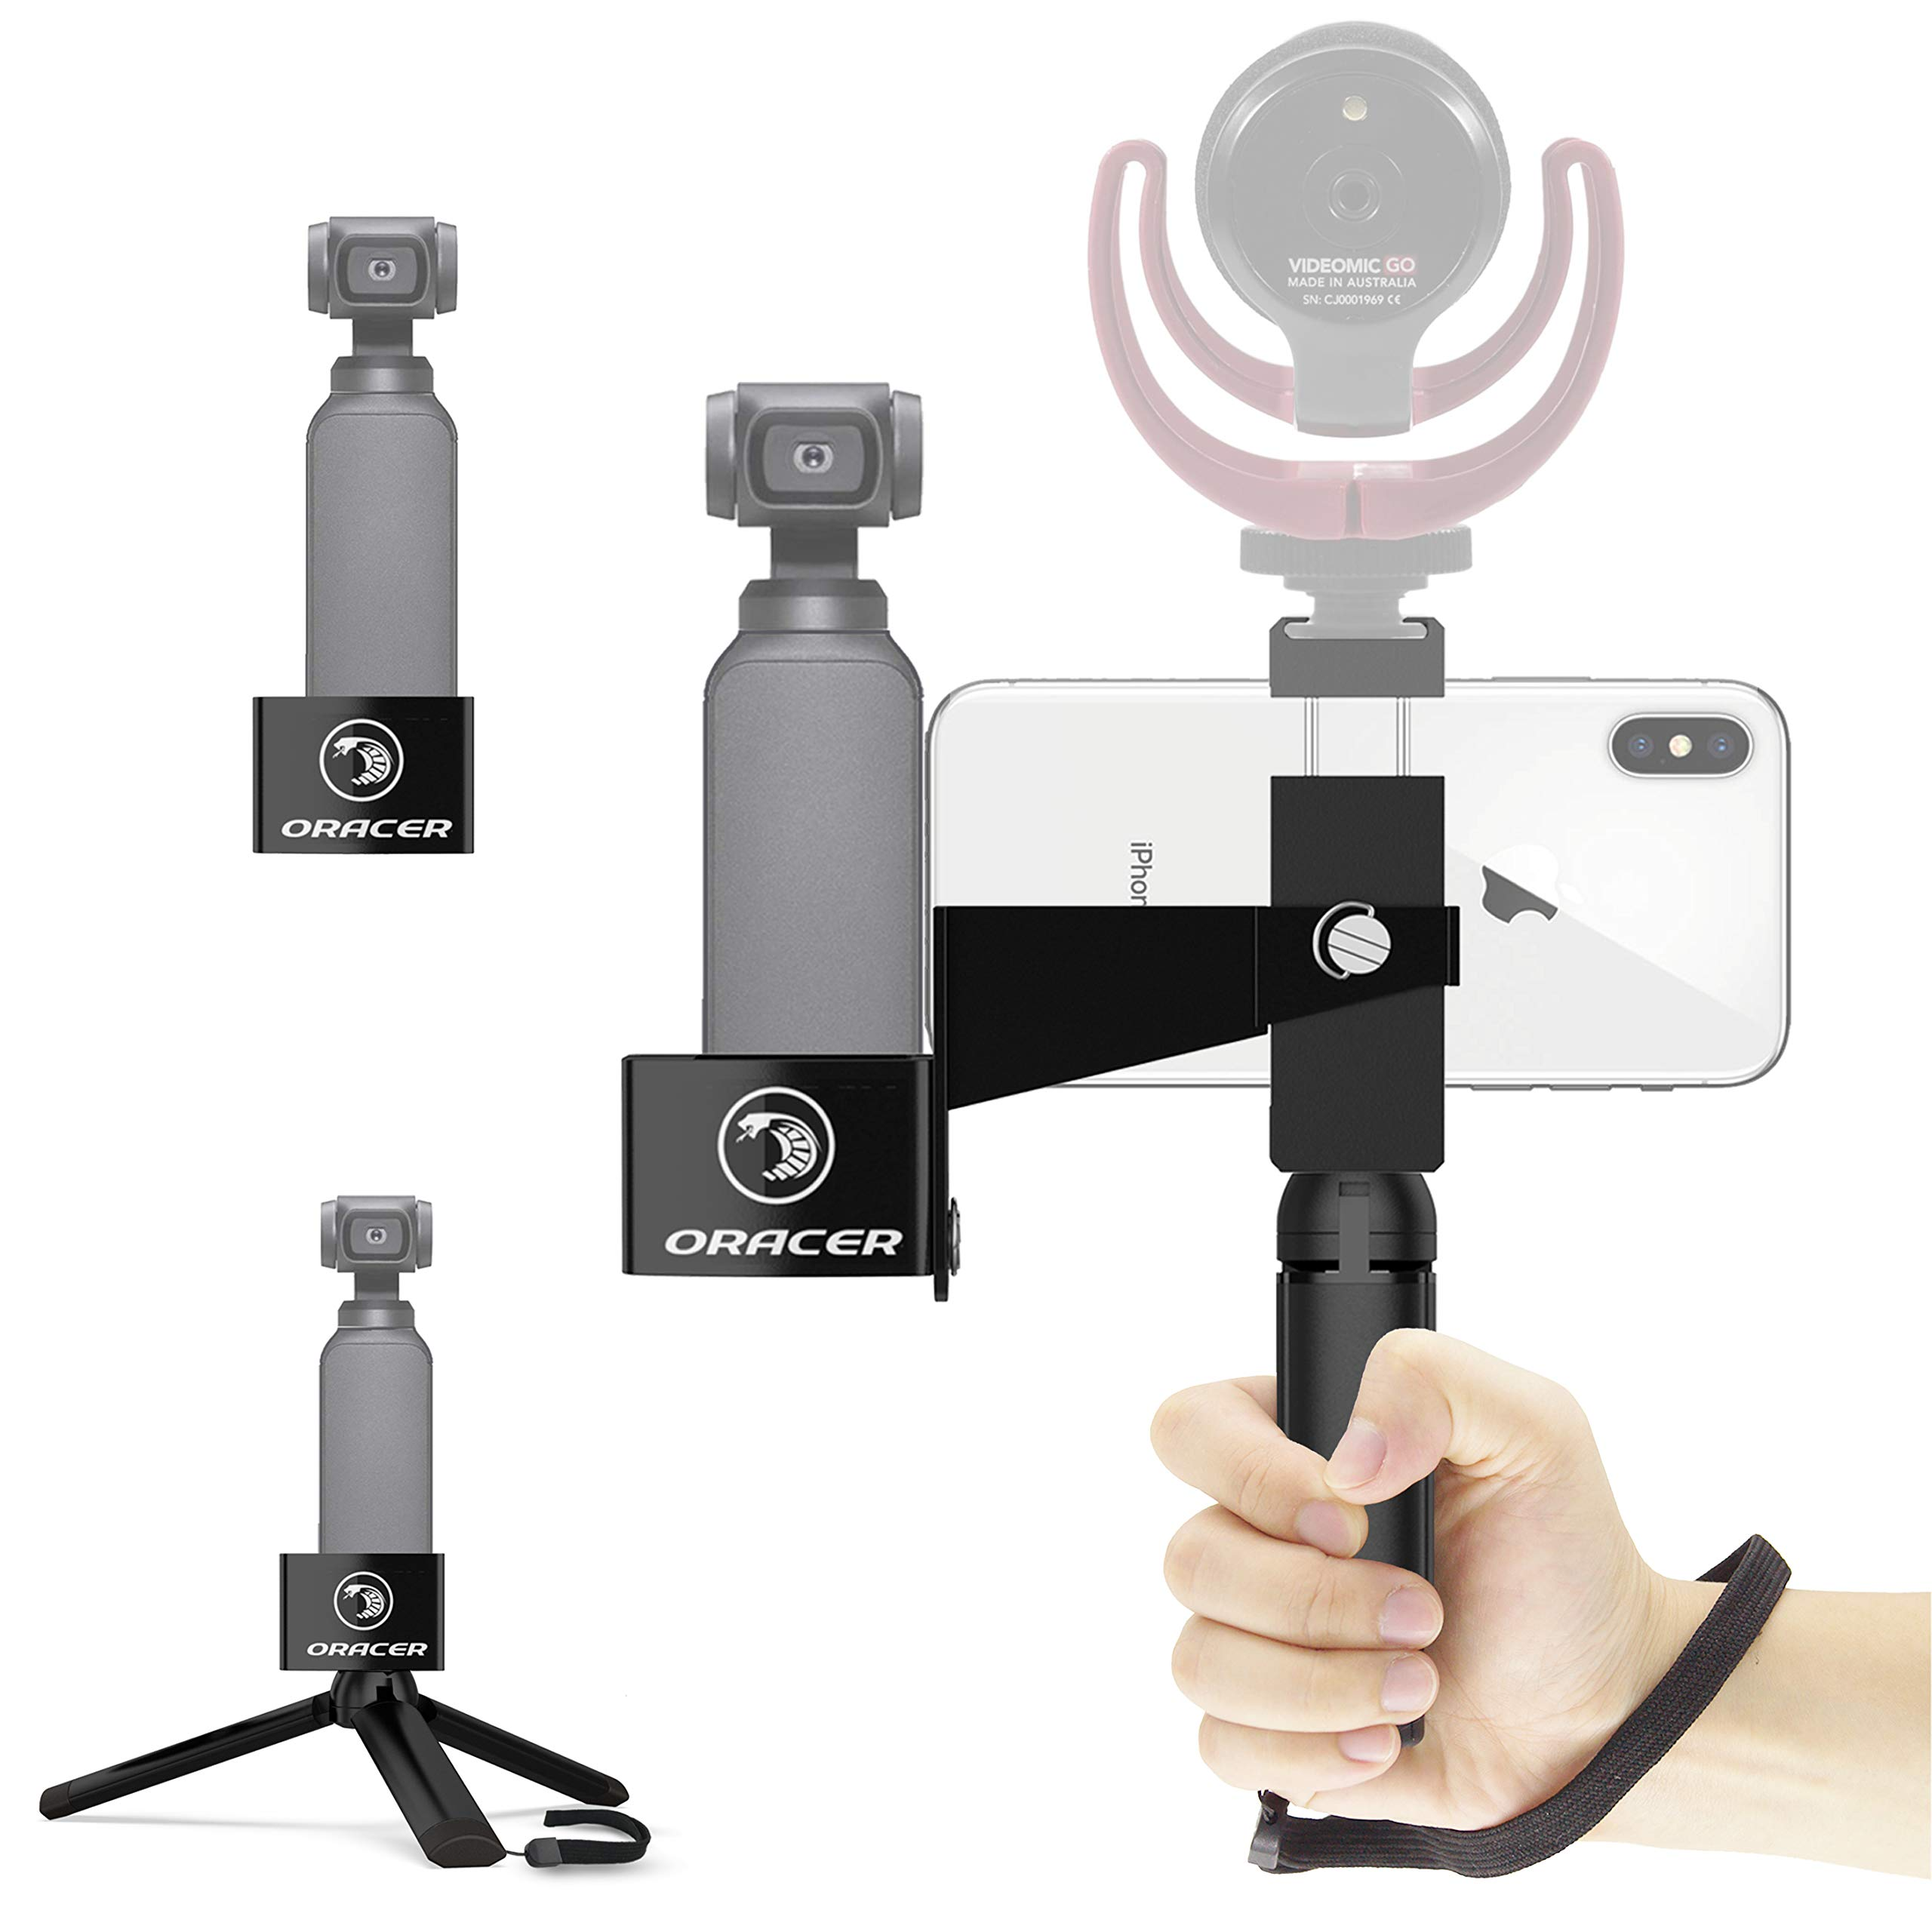 ORACER Osmo Pocket Accessories, Mount&Handheld Tripod Phone Holder with Cold Shoe, Expansion Kit for DJI Osmo Pocket